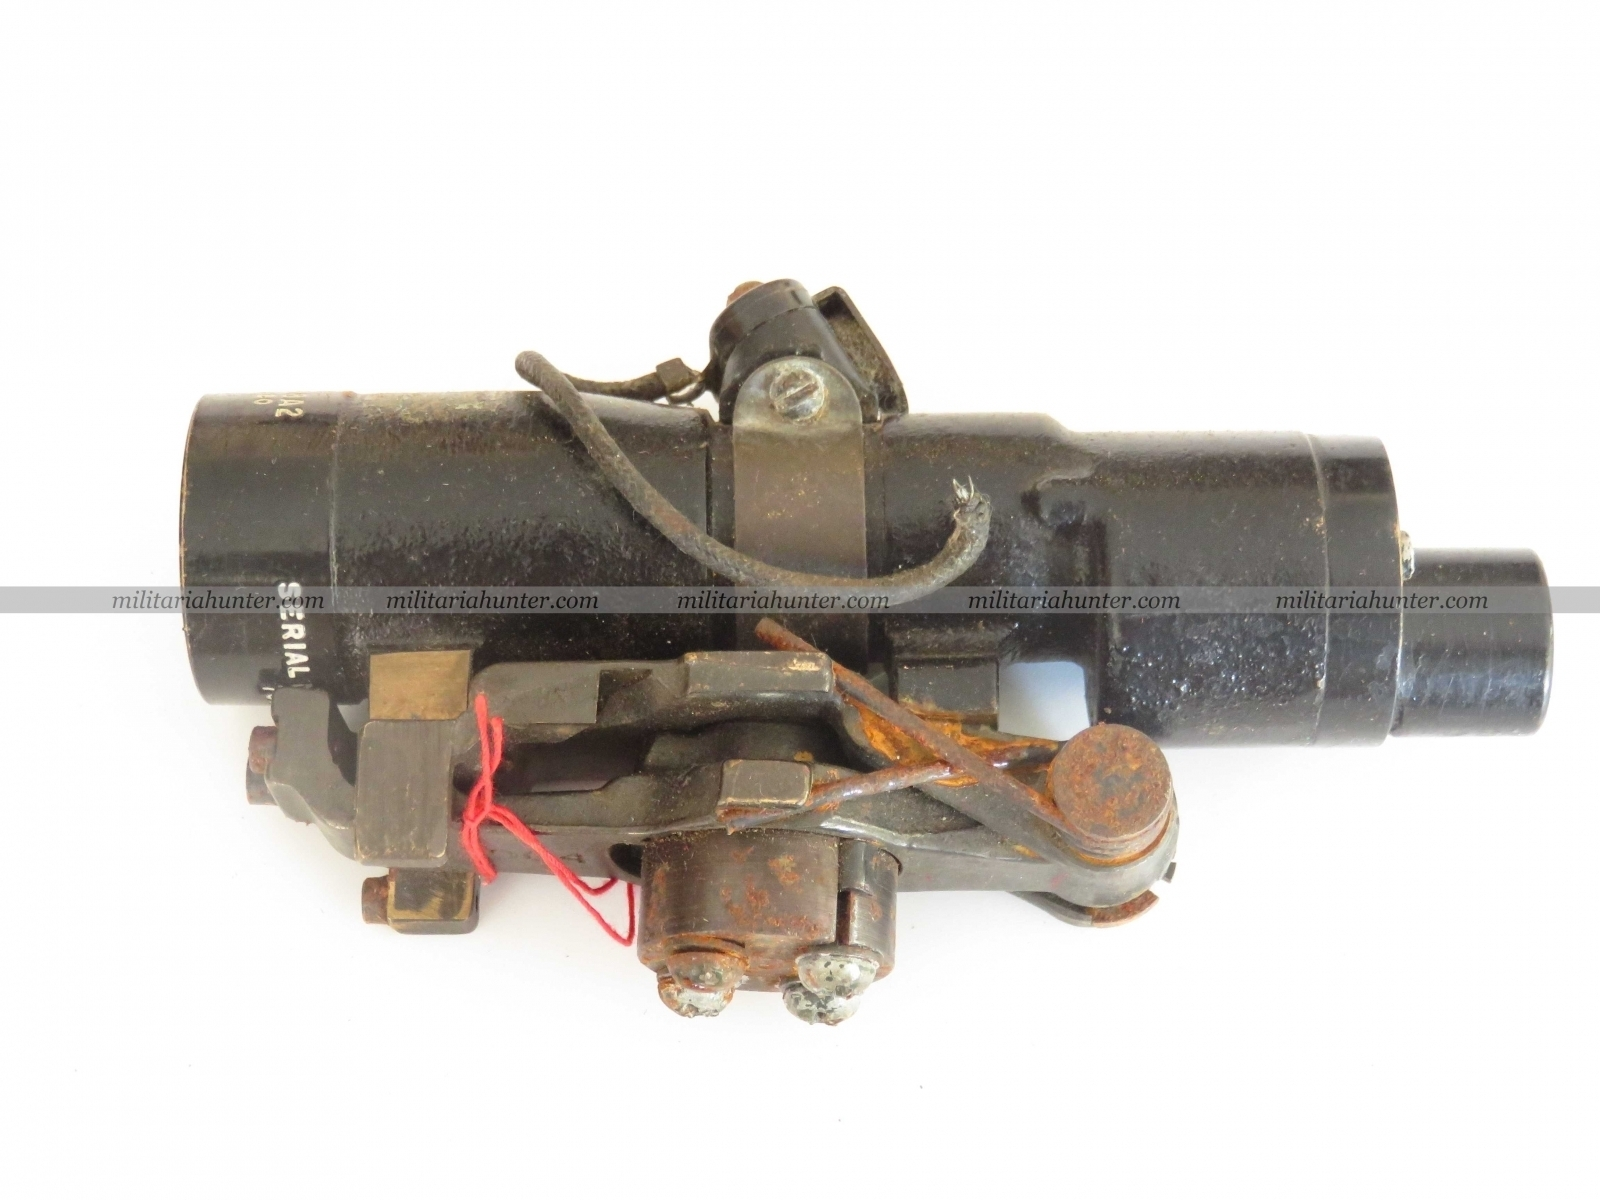 militaria : US ww2 Sherman Tank Telescope Sight M38A2